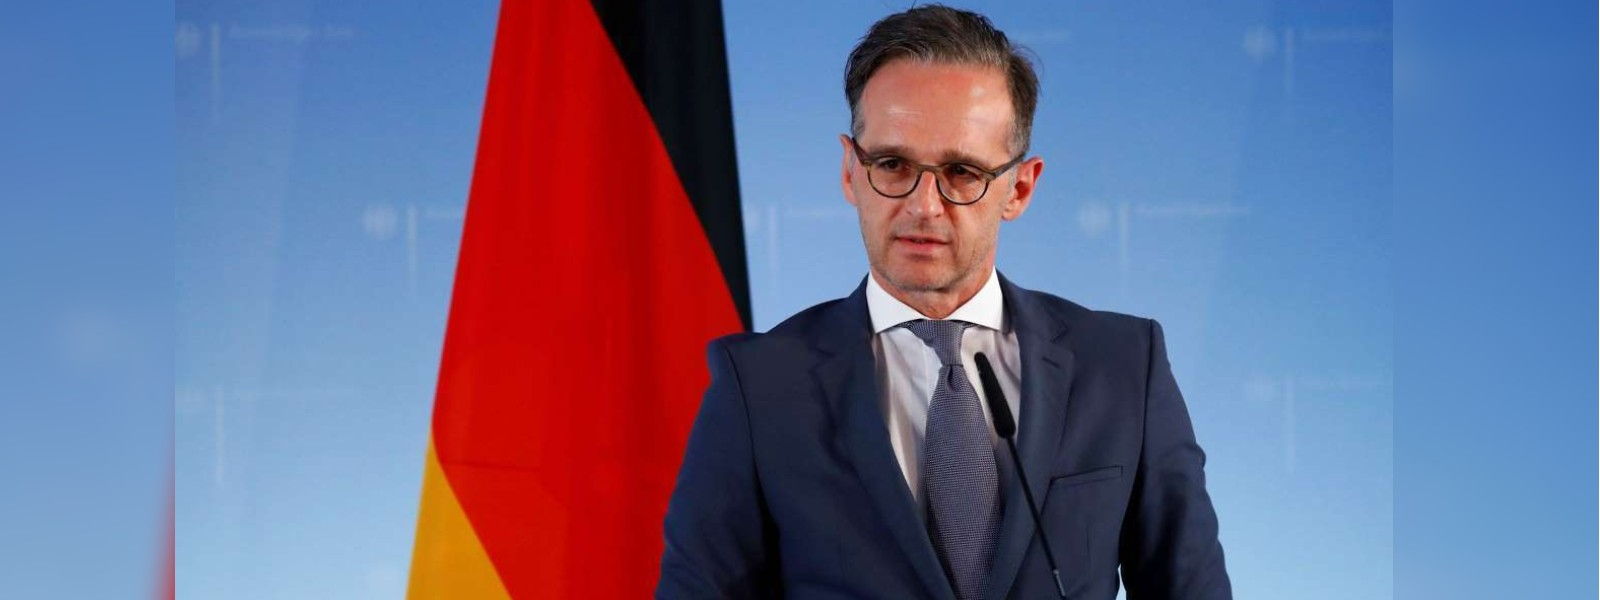 Germany to lift Coronavirus travel ban for European countries on June 15.